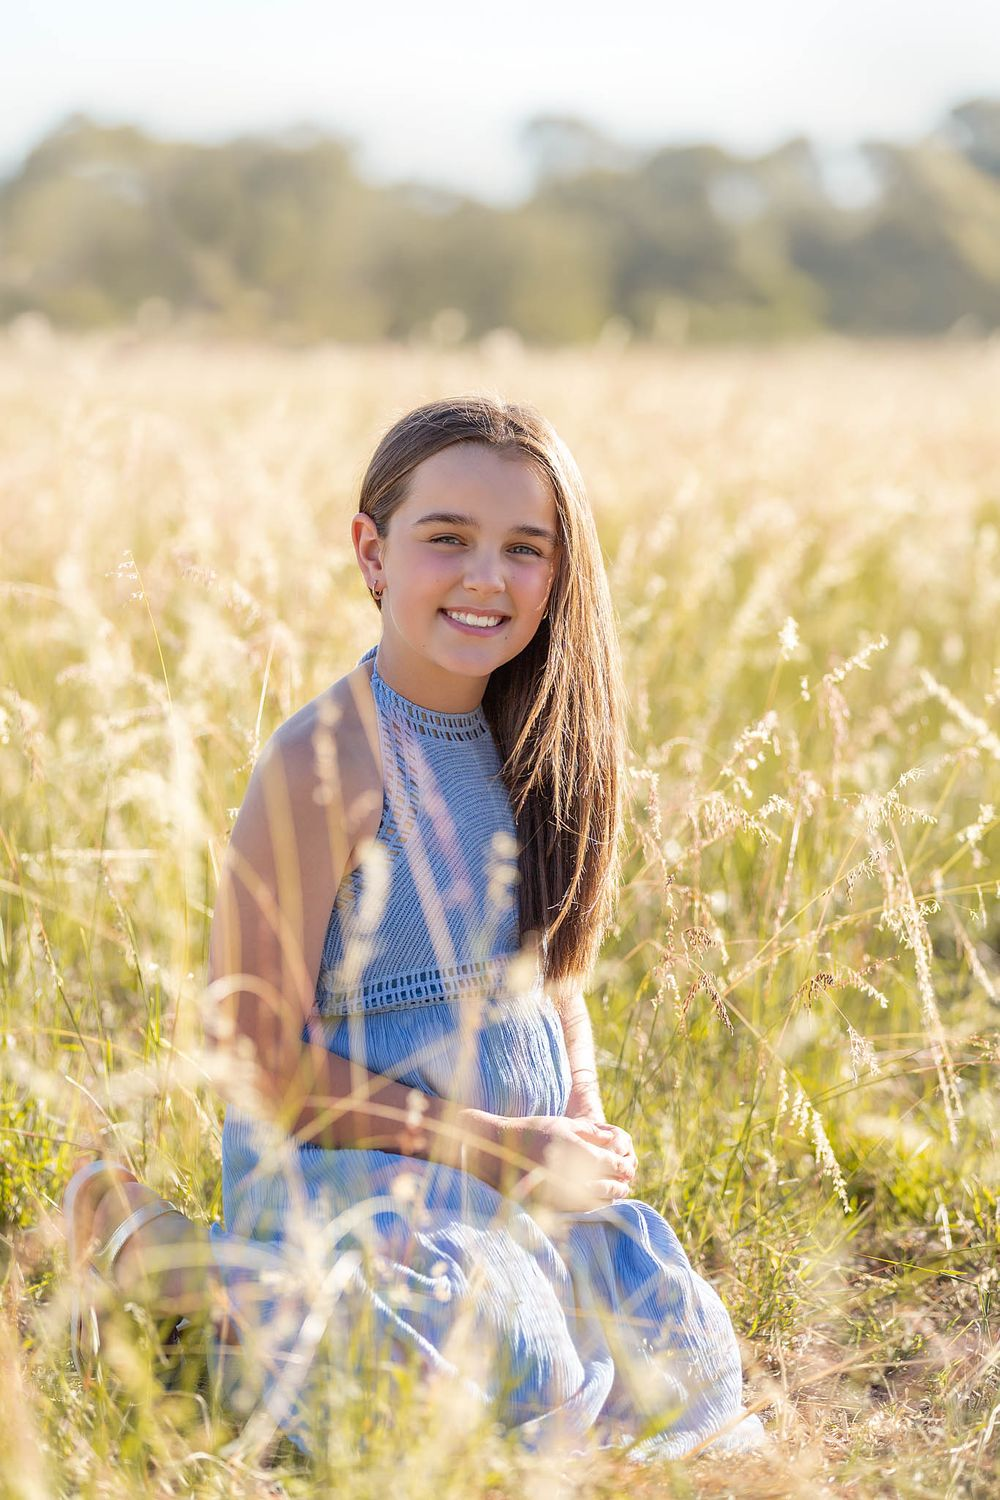 Girl in blue dress sitting in long golden grass